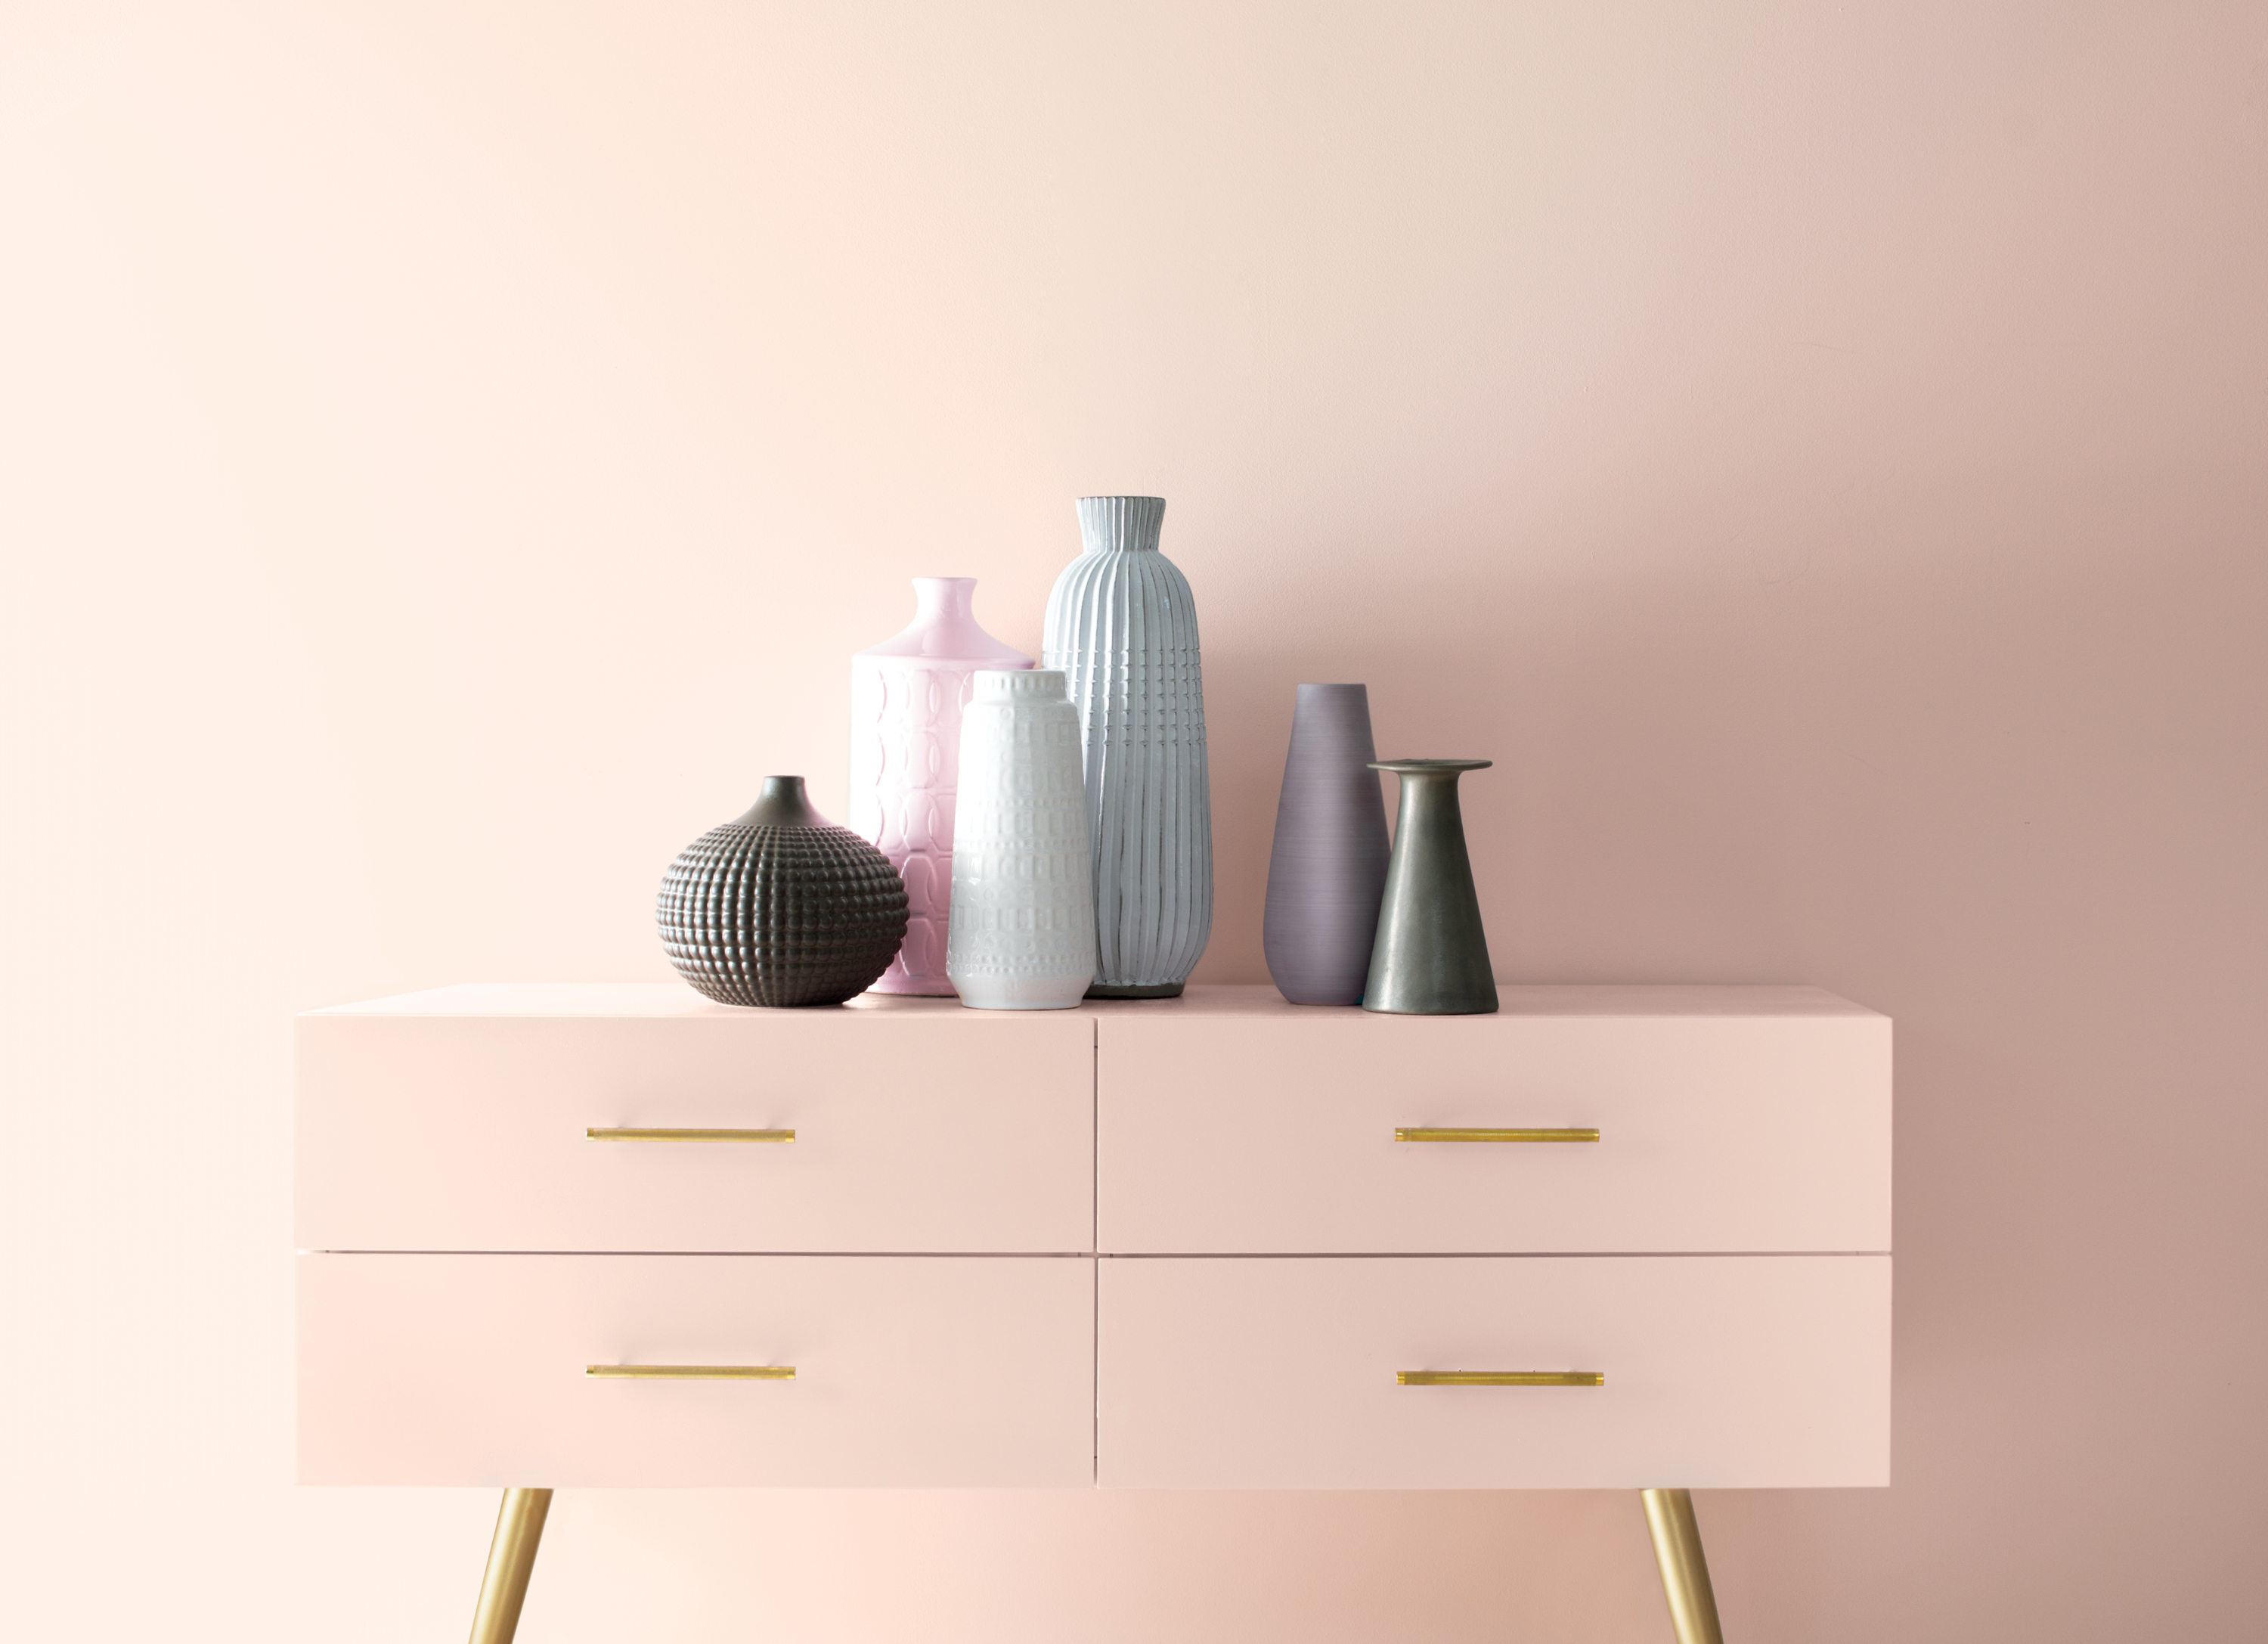 benjamin moore color of the year 2020 is a pale pink